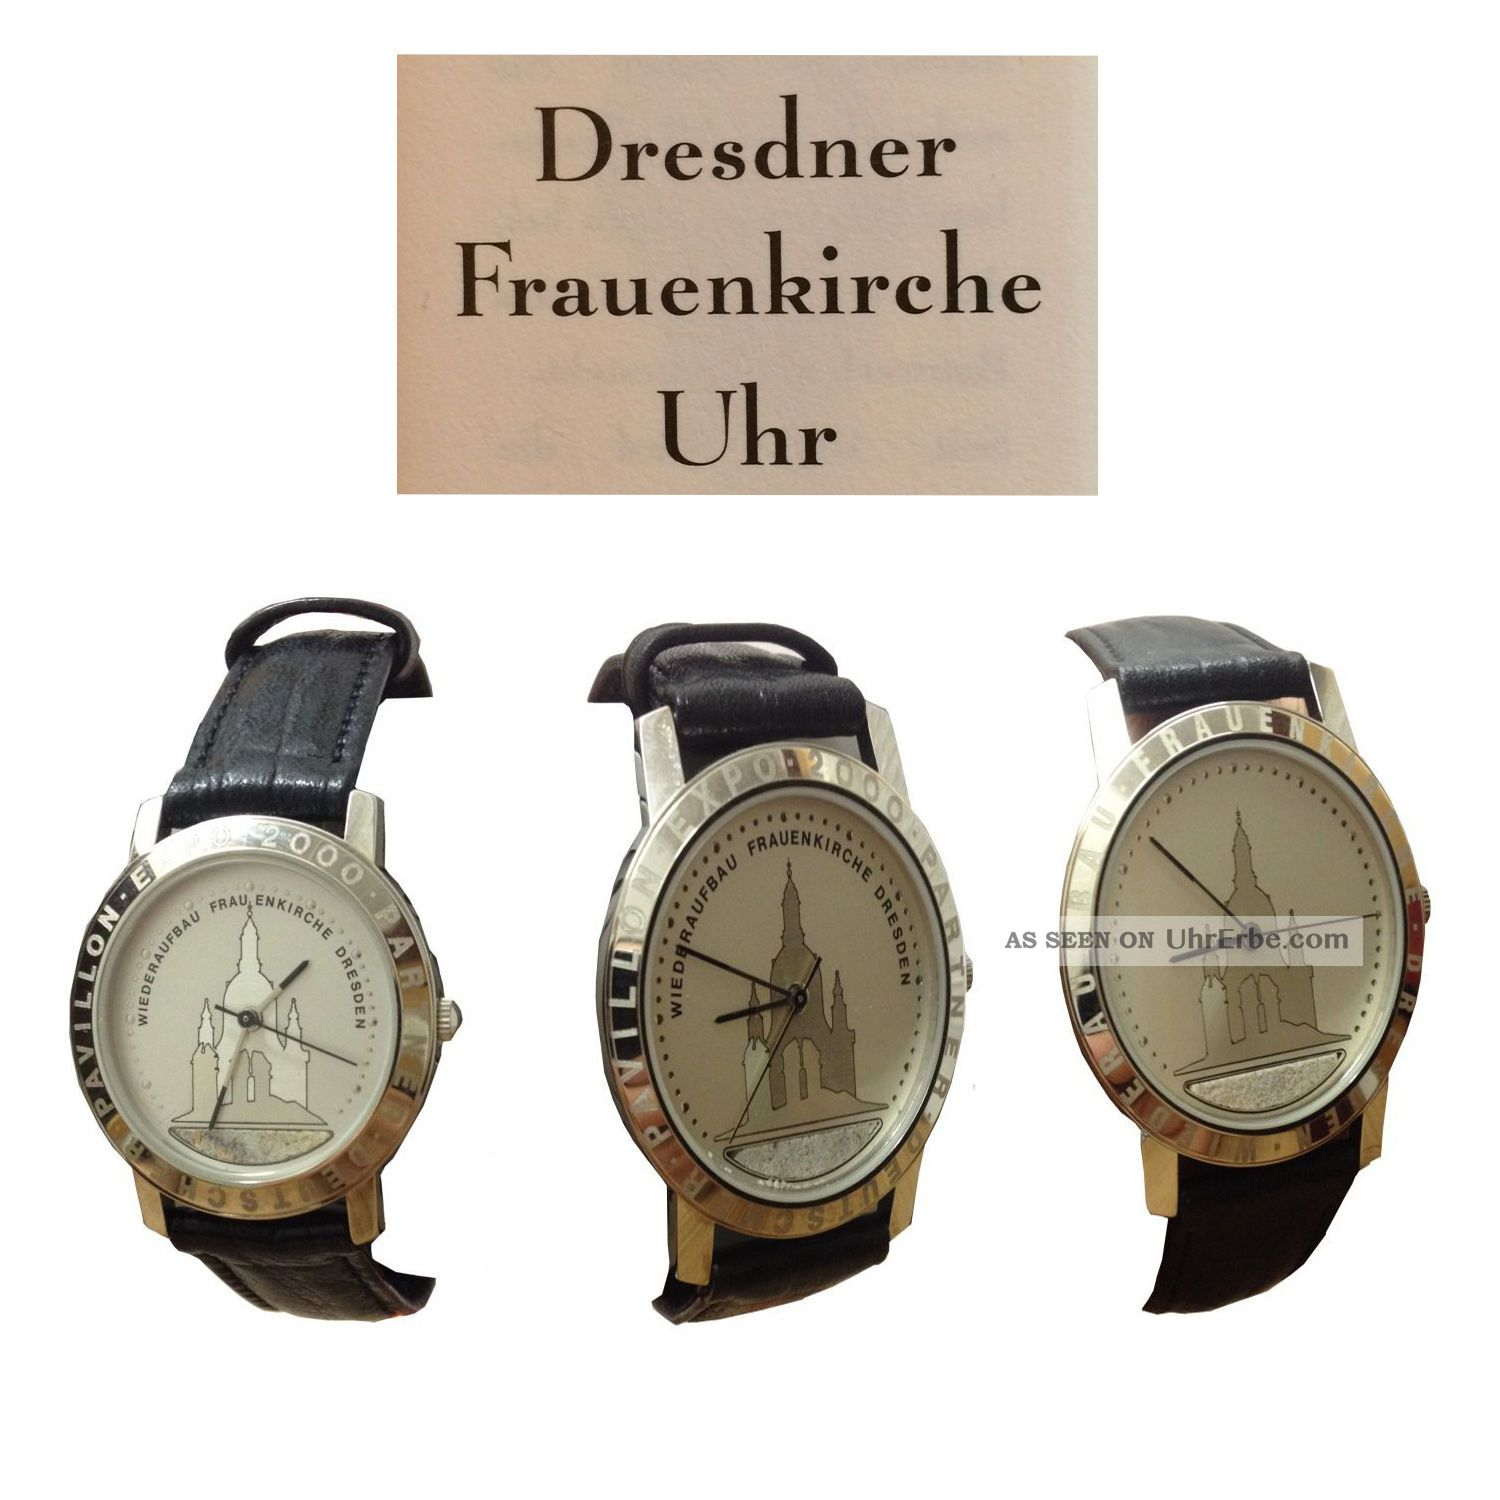 dresdner frauenkirche uhr herren frauen damen uhr. Black Bedroom Furniture Sets. Home Design Ideas